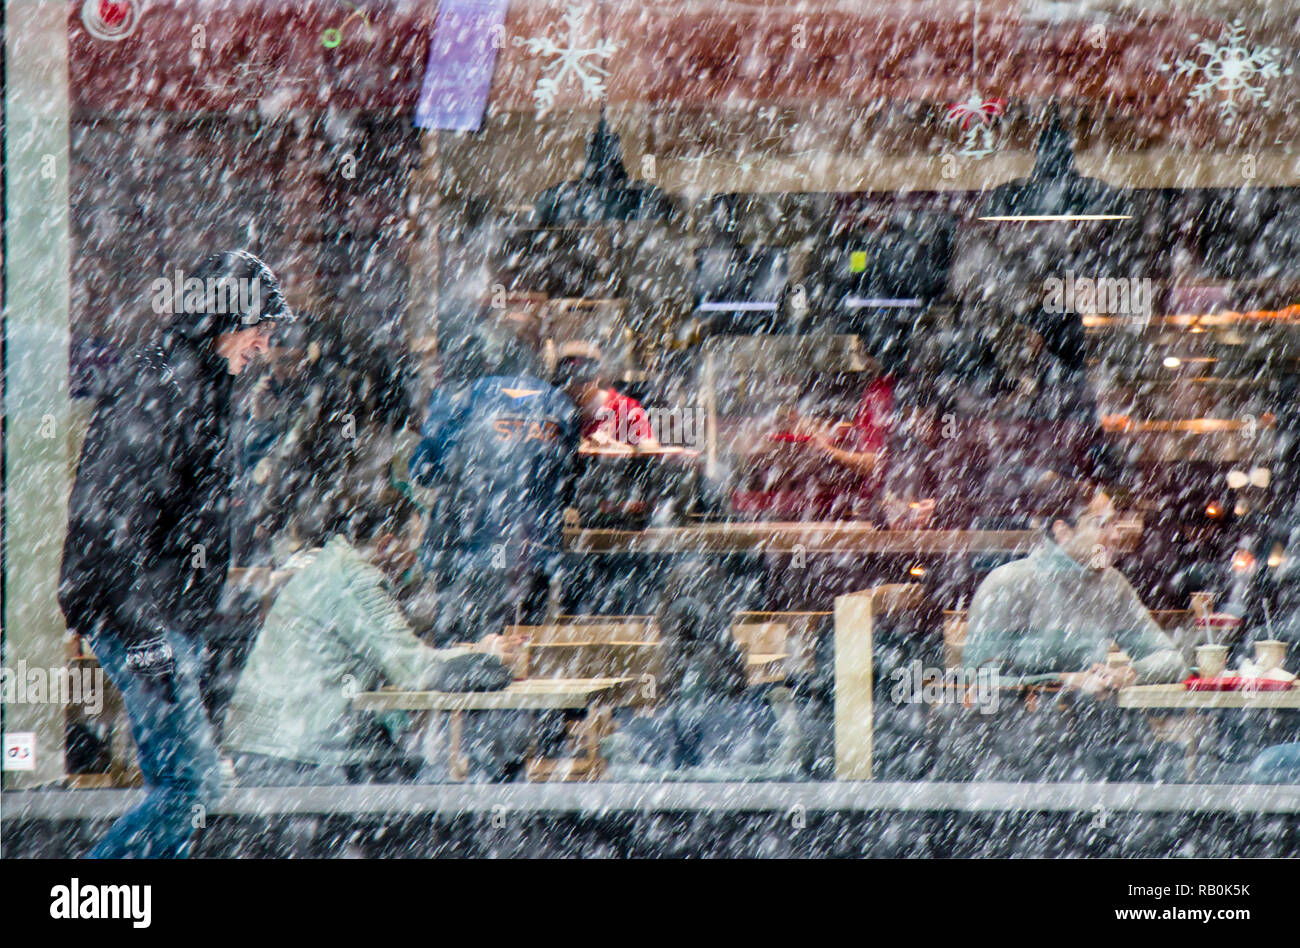 Belgrade, Serbia - December 15, 2018: Blurry man walking alone city street in heavy snowfall and people sitting in a restaurant window behind him Stock Photo